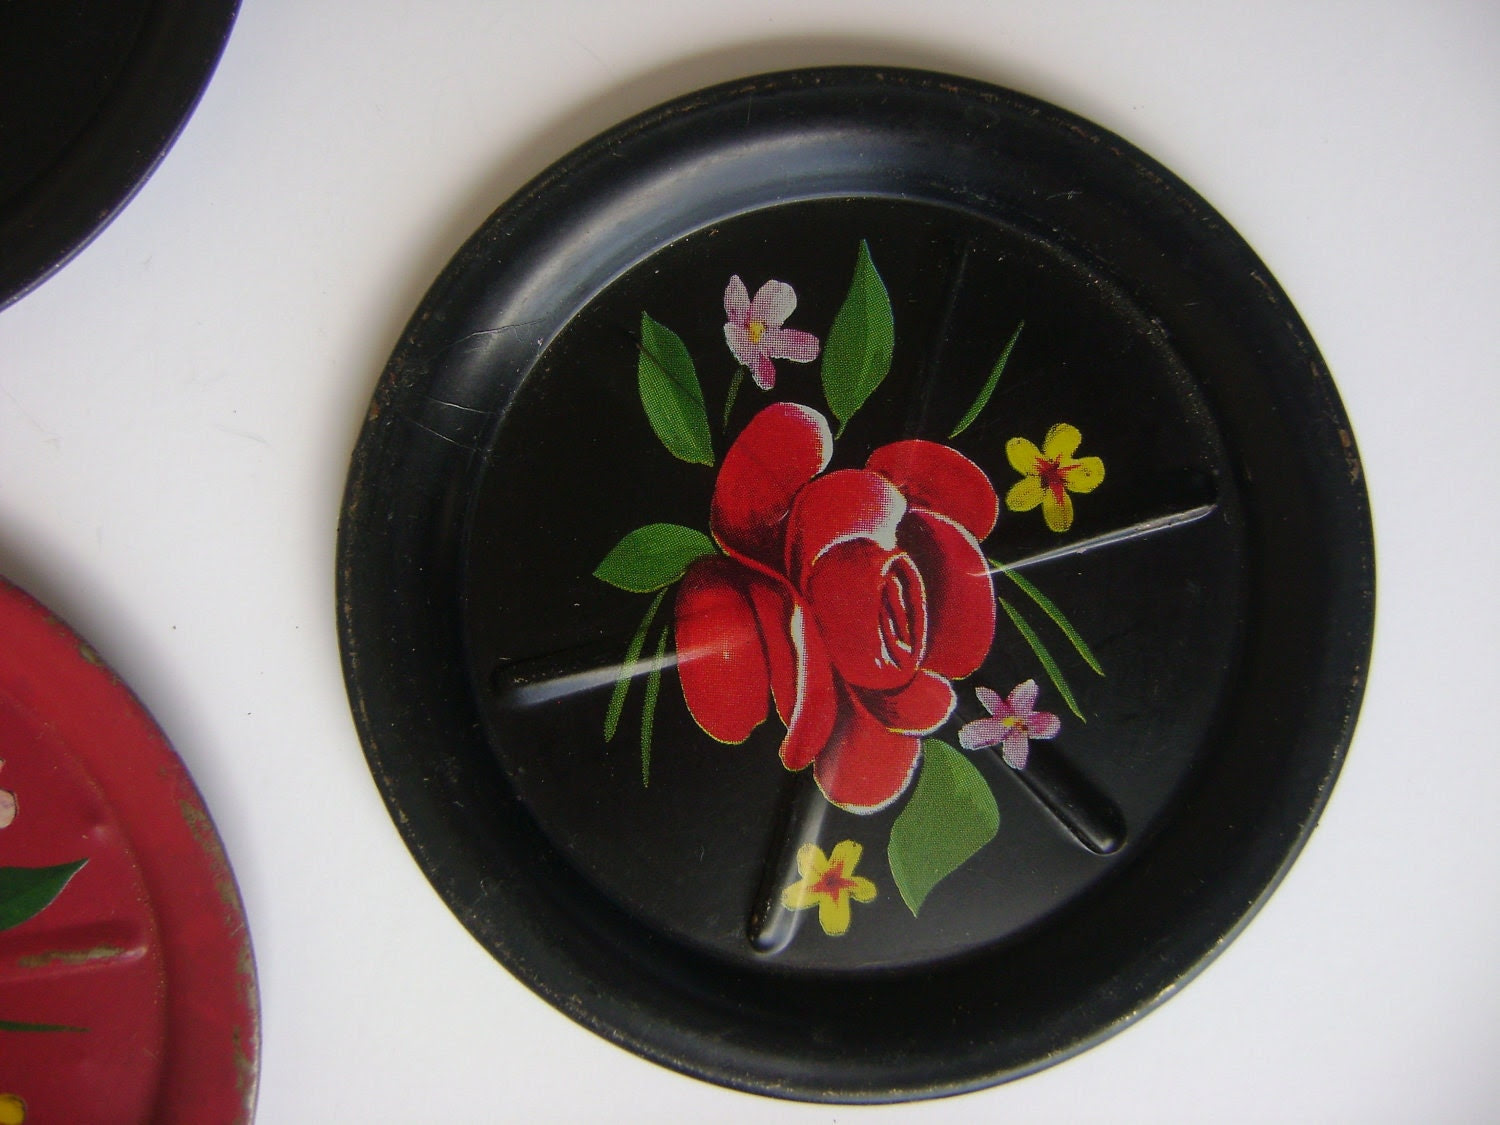 Vintage Tole Painted Coasters-1950's Decor-Summer Party-Teacher Gift - HallesHouse